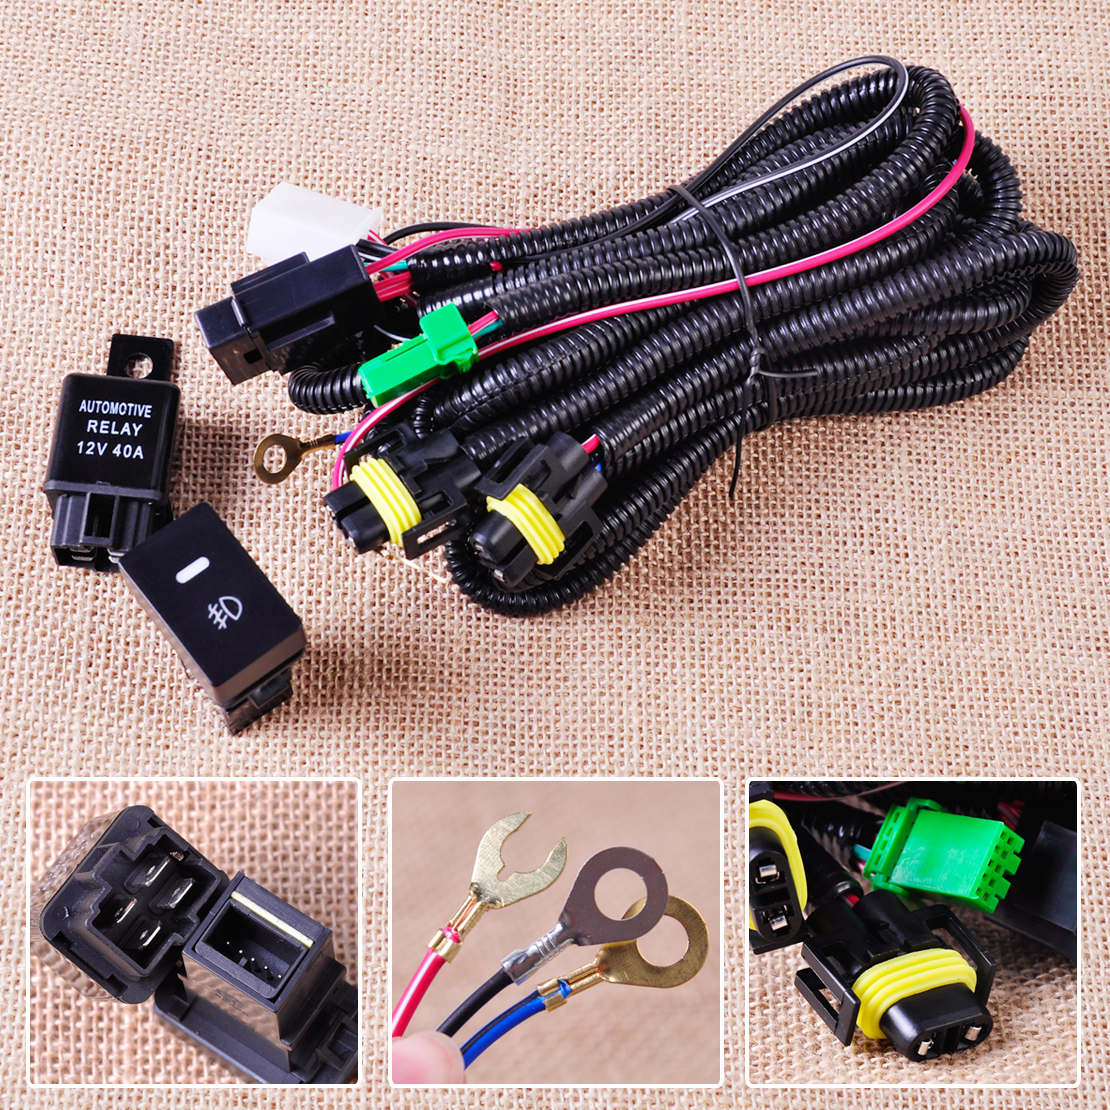 CITALL H11 Fog Light Lamp Wiring Harness Sockets Wire Switch with LED indicators Automotive Relay for citall h11 fog light lamp wiring harness sockets wire switch ford f250 fog light wiring harness at bayanpartner.co